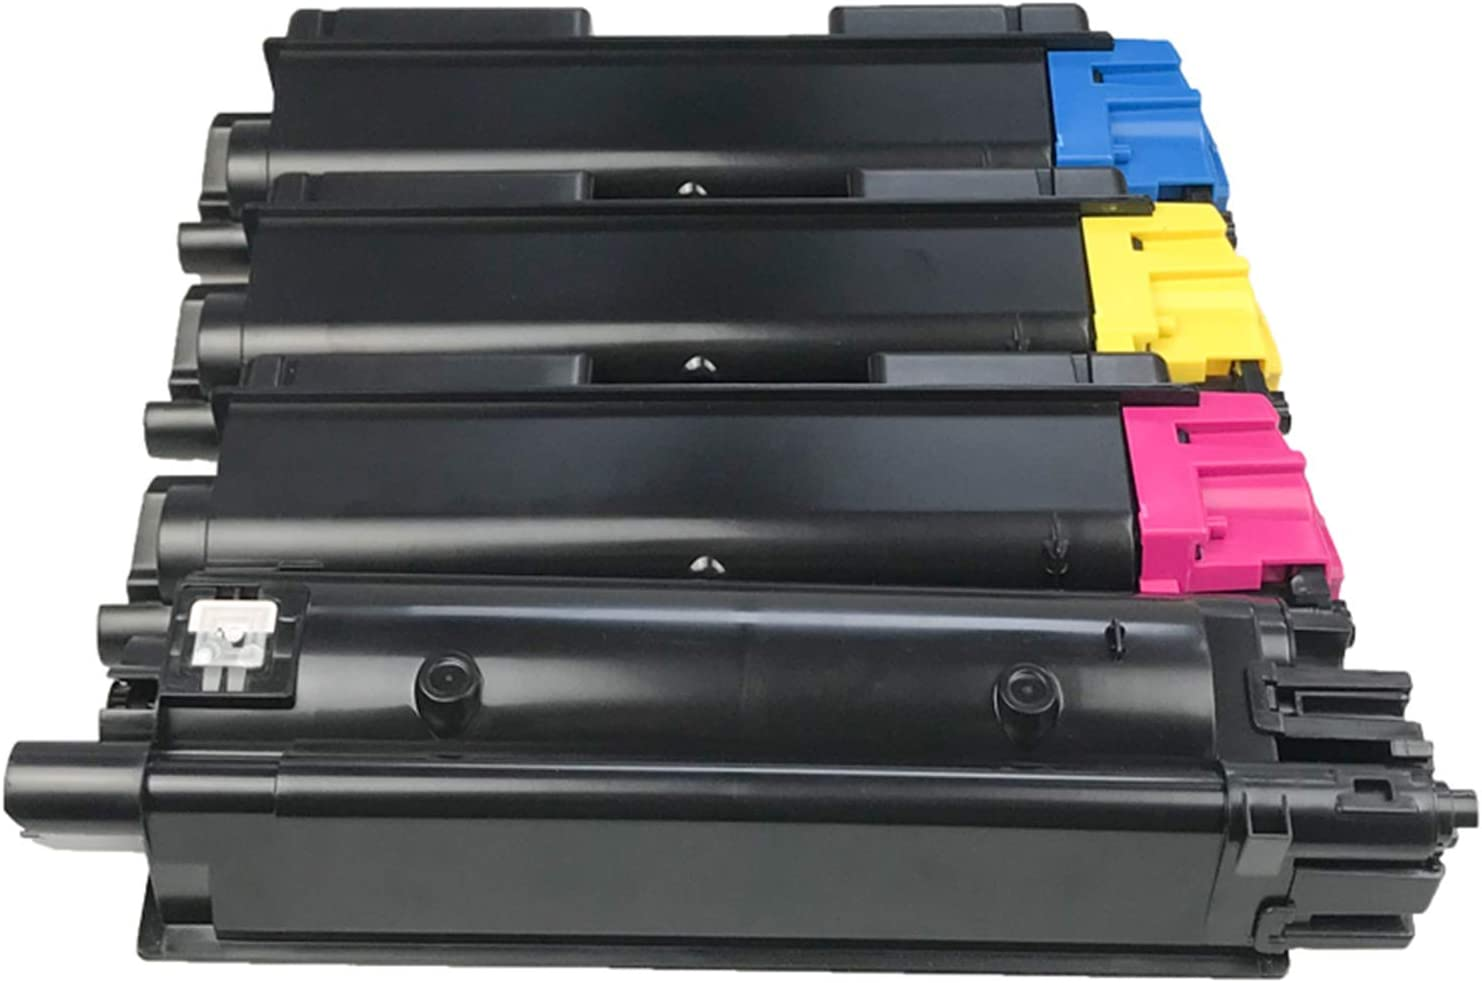 DLKJ Compatible Toner Cartridge Replacement for Kyocera TK 5135 TO-5135,Fits with ECOSYS P7040 Printer,16000 Pages High Page Yield 4colors